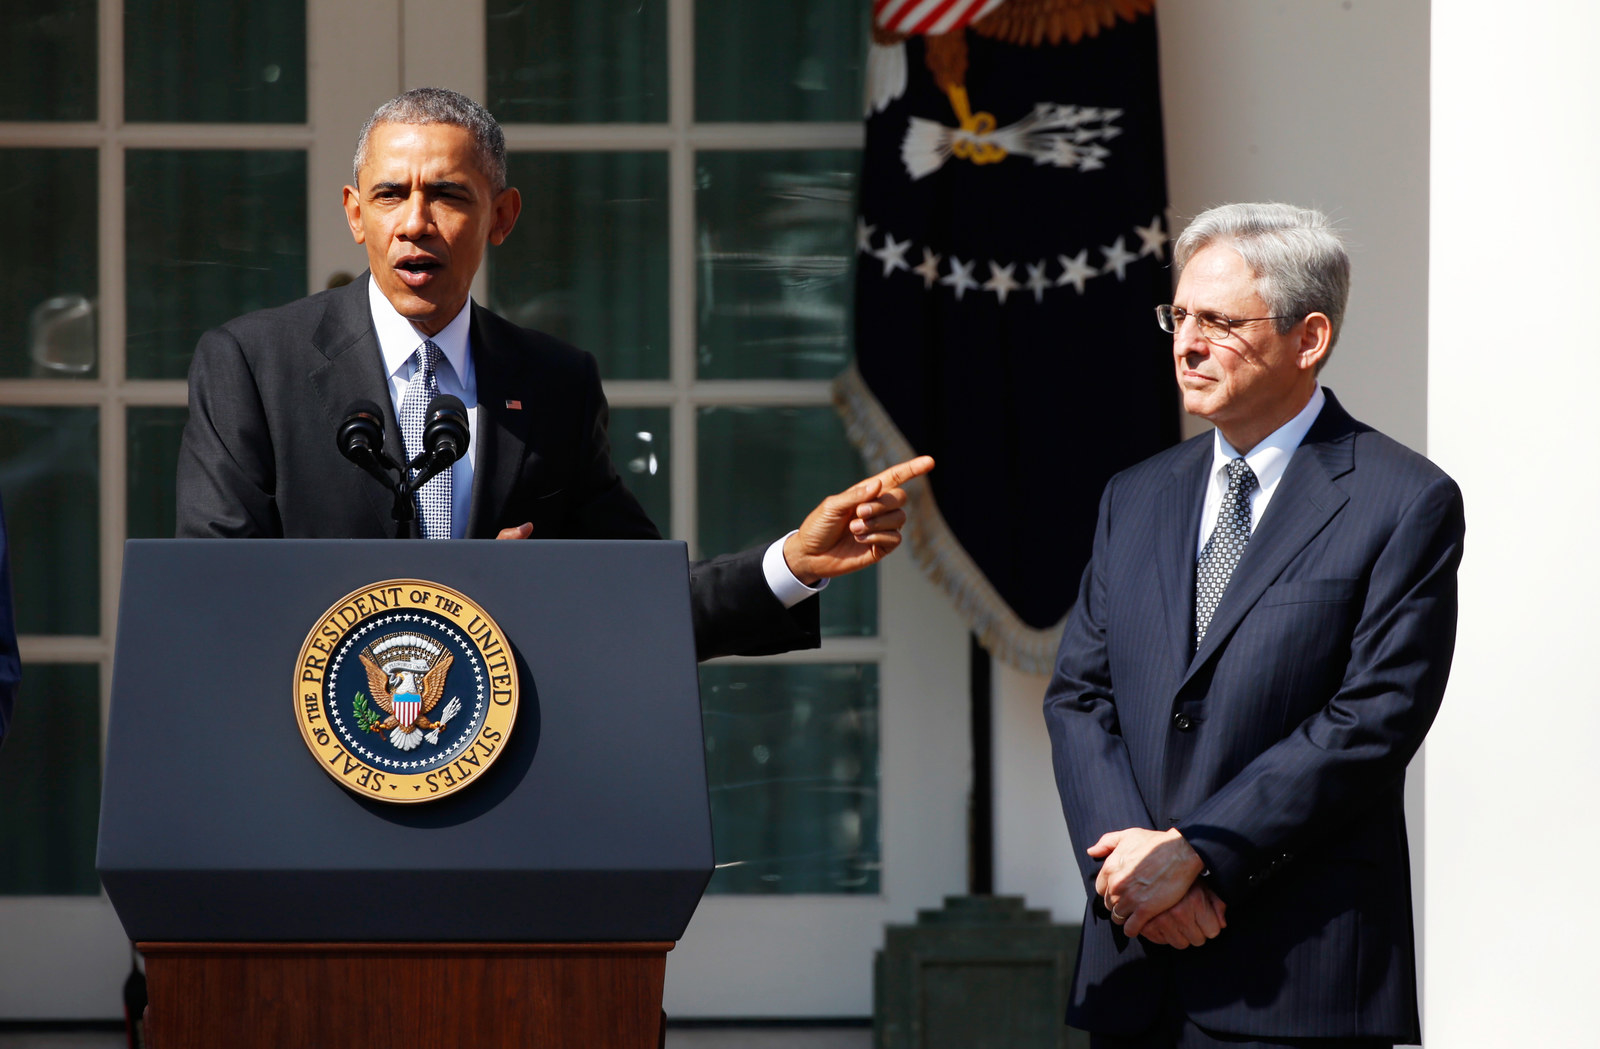 Merrick Garland Will Be On The Bench — But Not The Supreme Court — In January